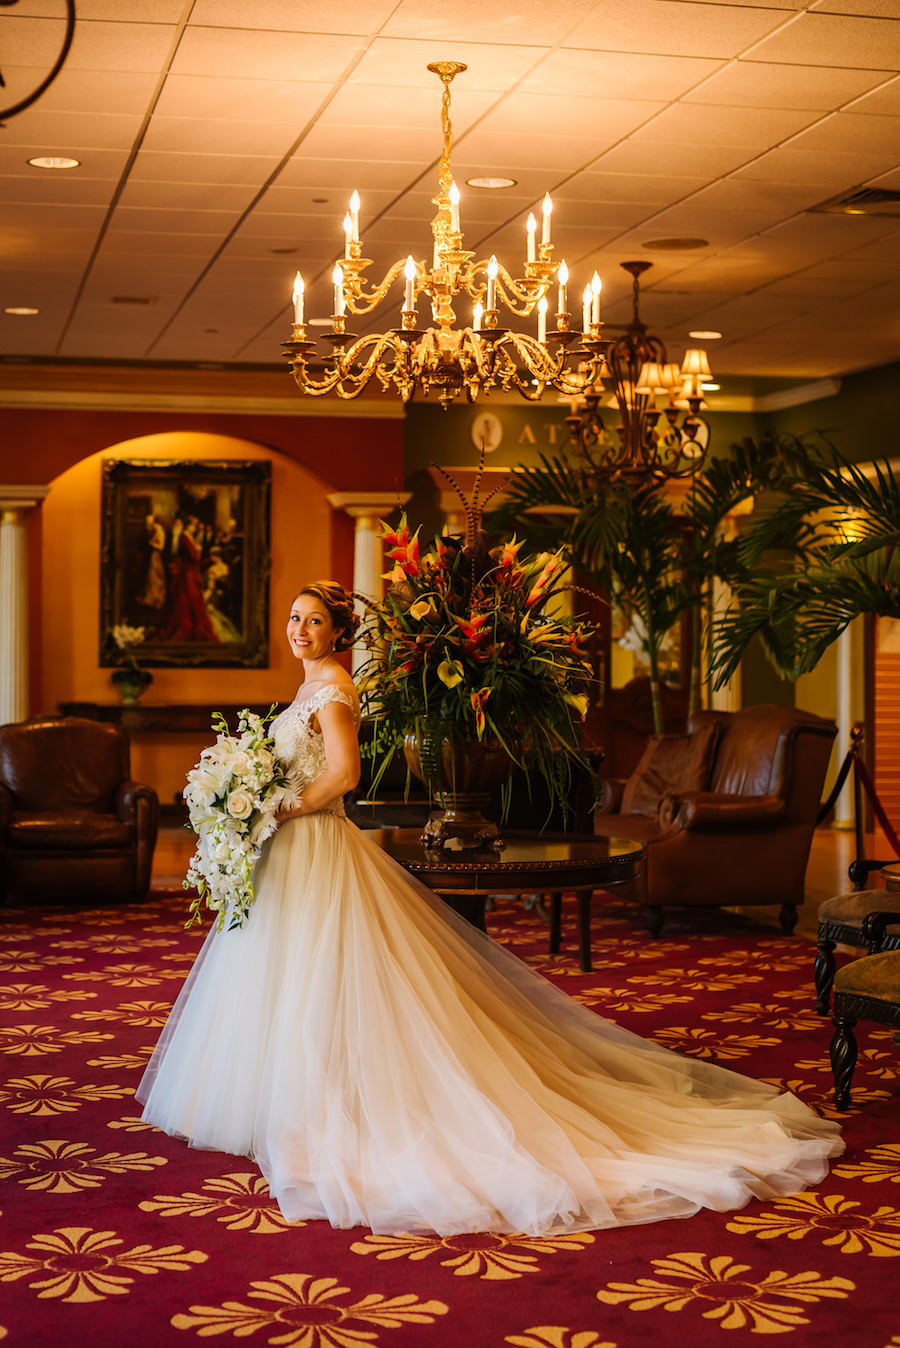 Bridal Portrait wearing Maggie Sottero Wedding Dress with Large White Floral and Greenery Wedding Bouquet   Tampa Bay Wedding Venue Ruth Eckerd Hall